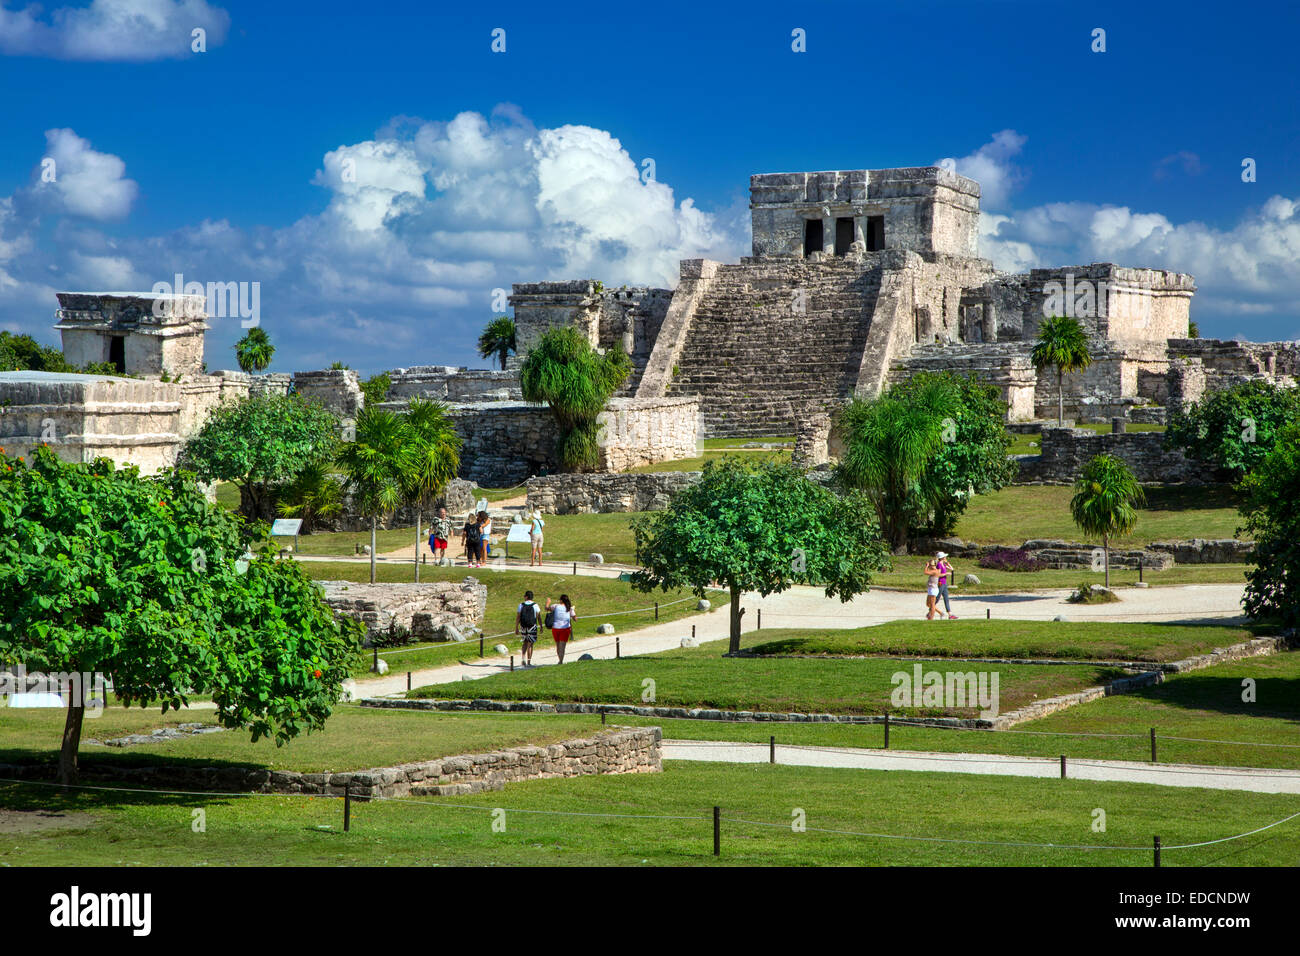 Tourists visiting the ruins of the Mayan temple grounds at Tulum, Quintana Roo, Yucatan, Mexico - Stock Image